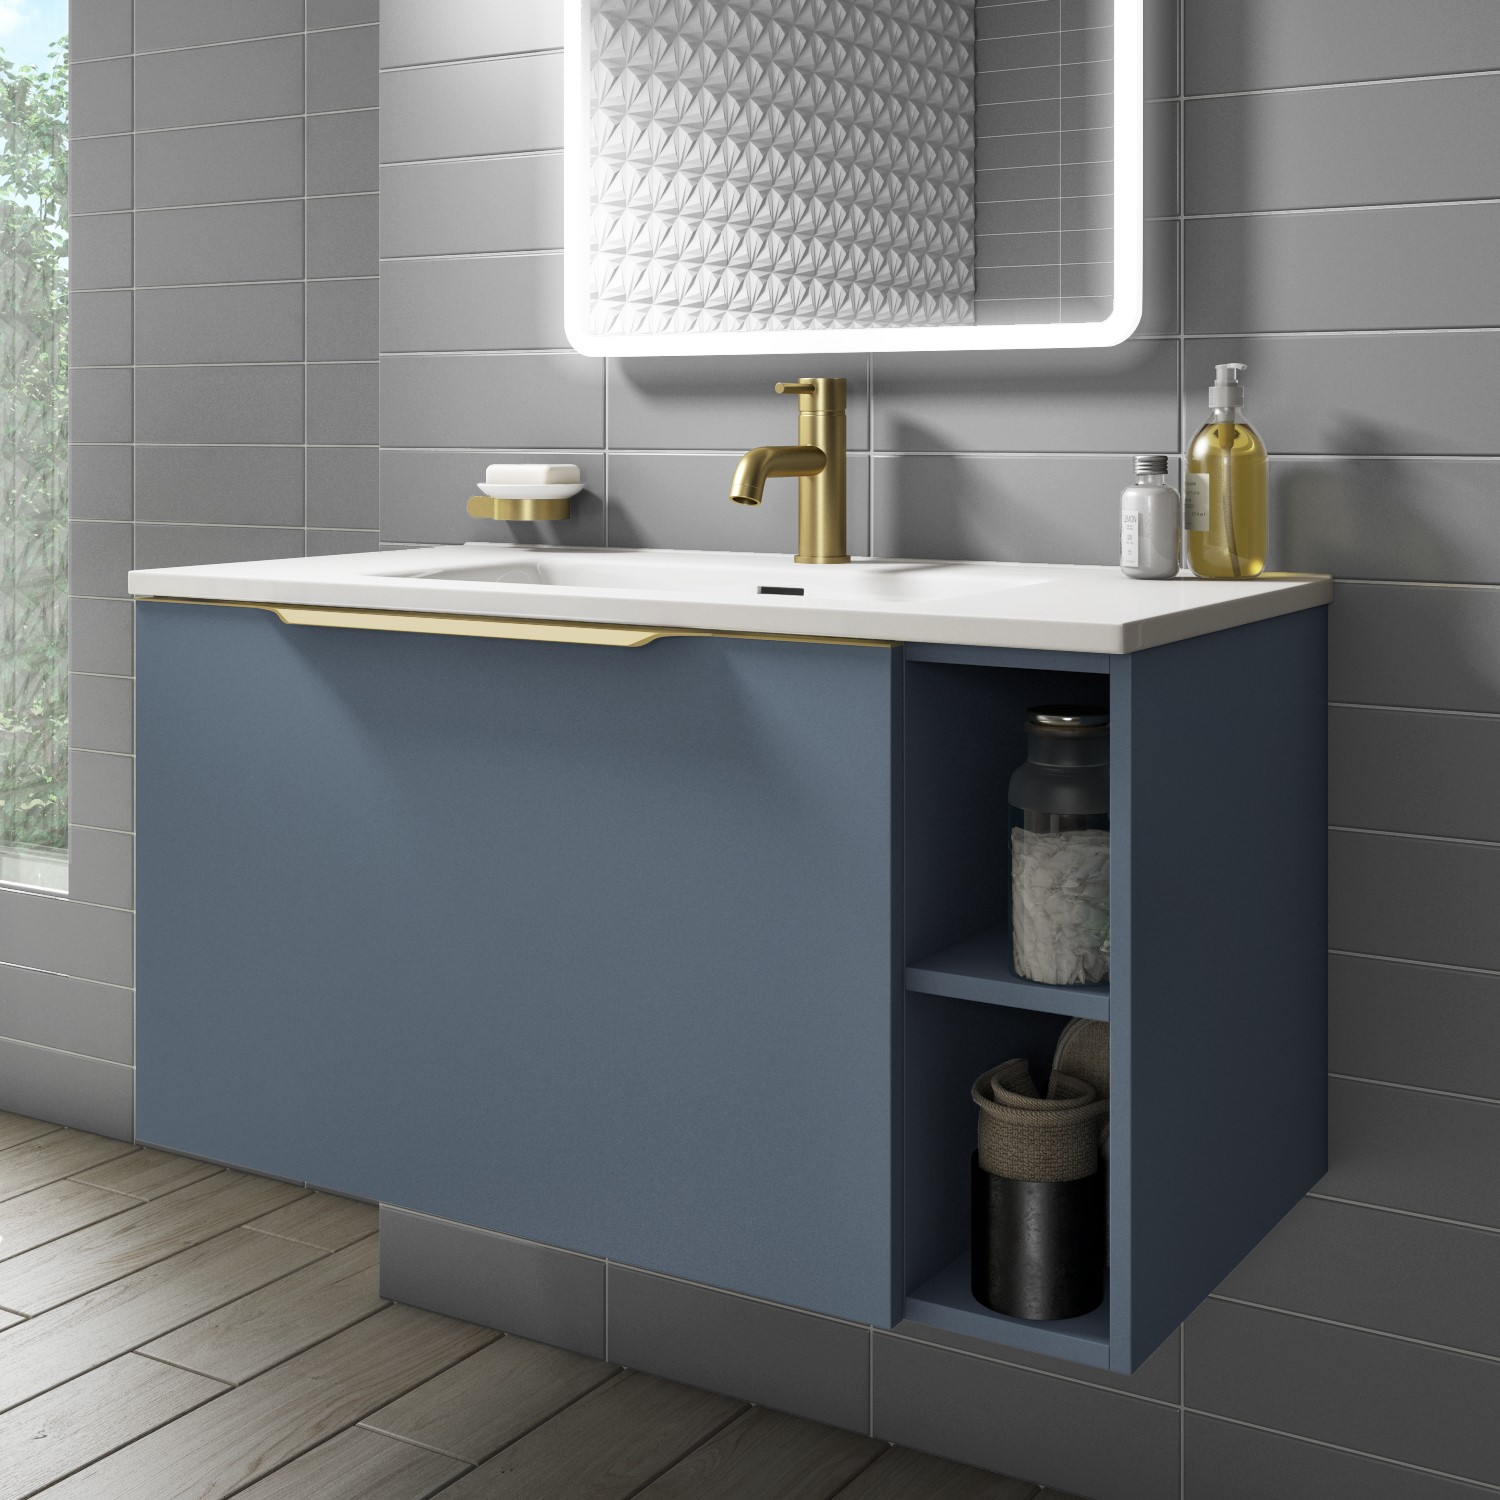 900mm Wall Hung Vanity Unit With Basin Matt Blue With Gold Handle Sion Better Bathrooms